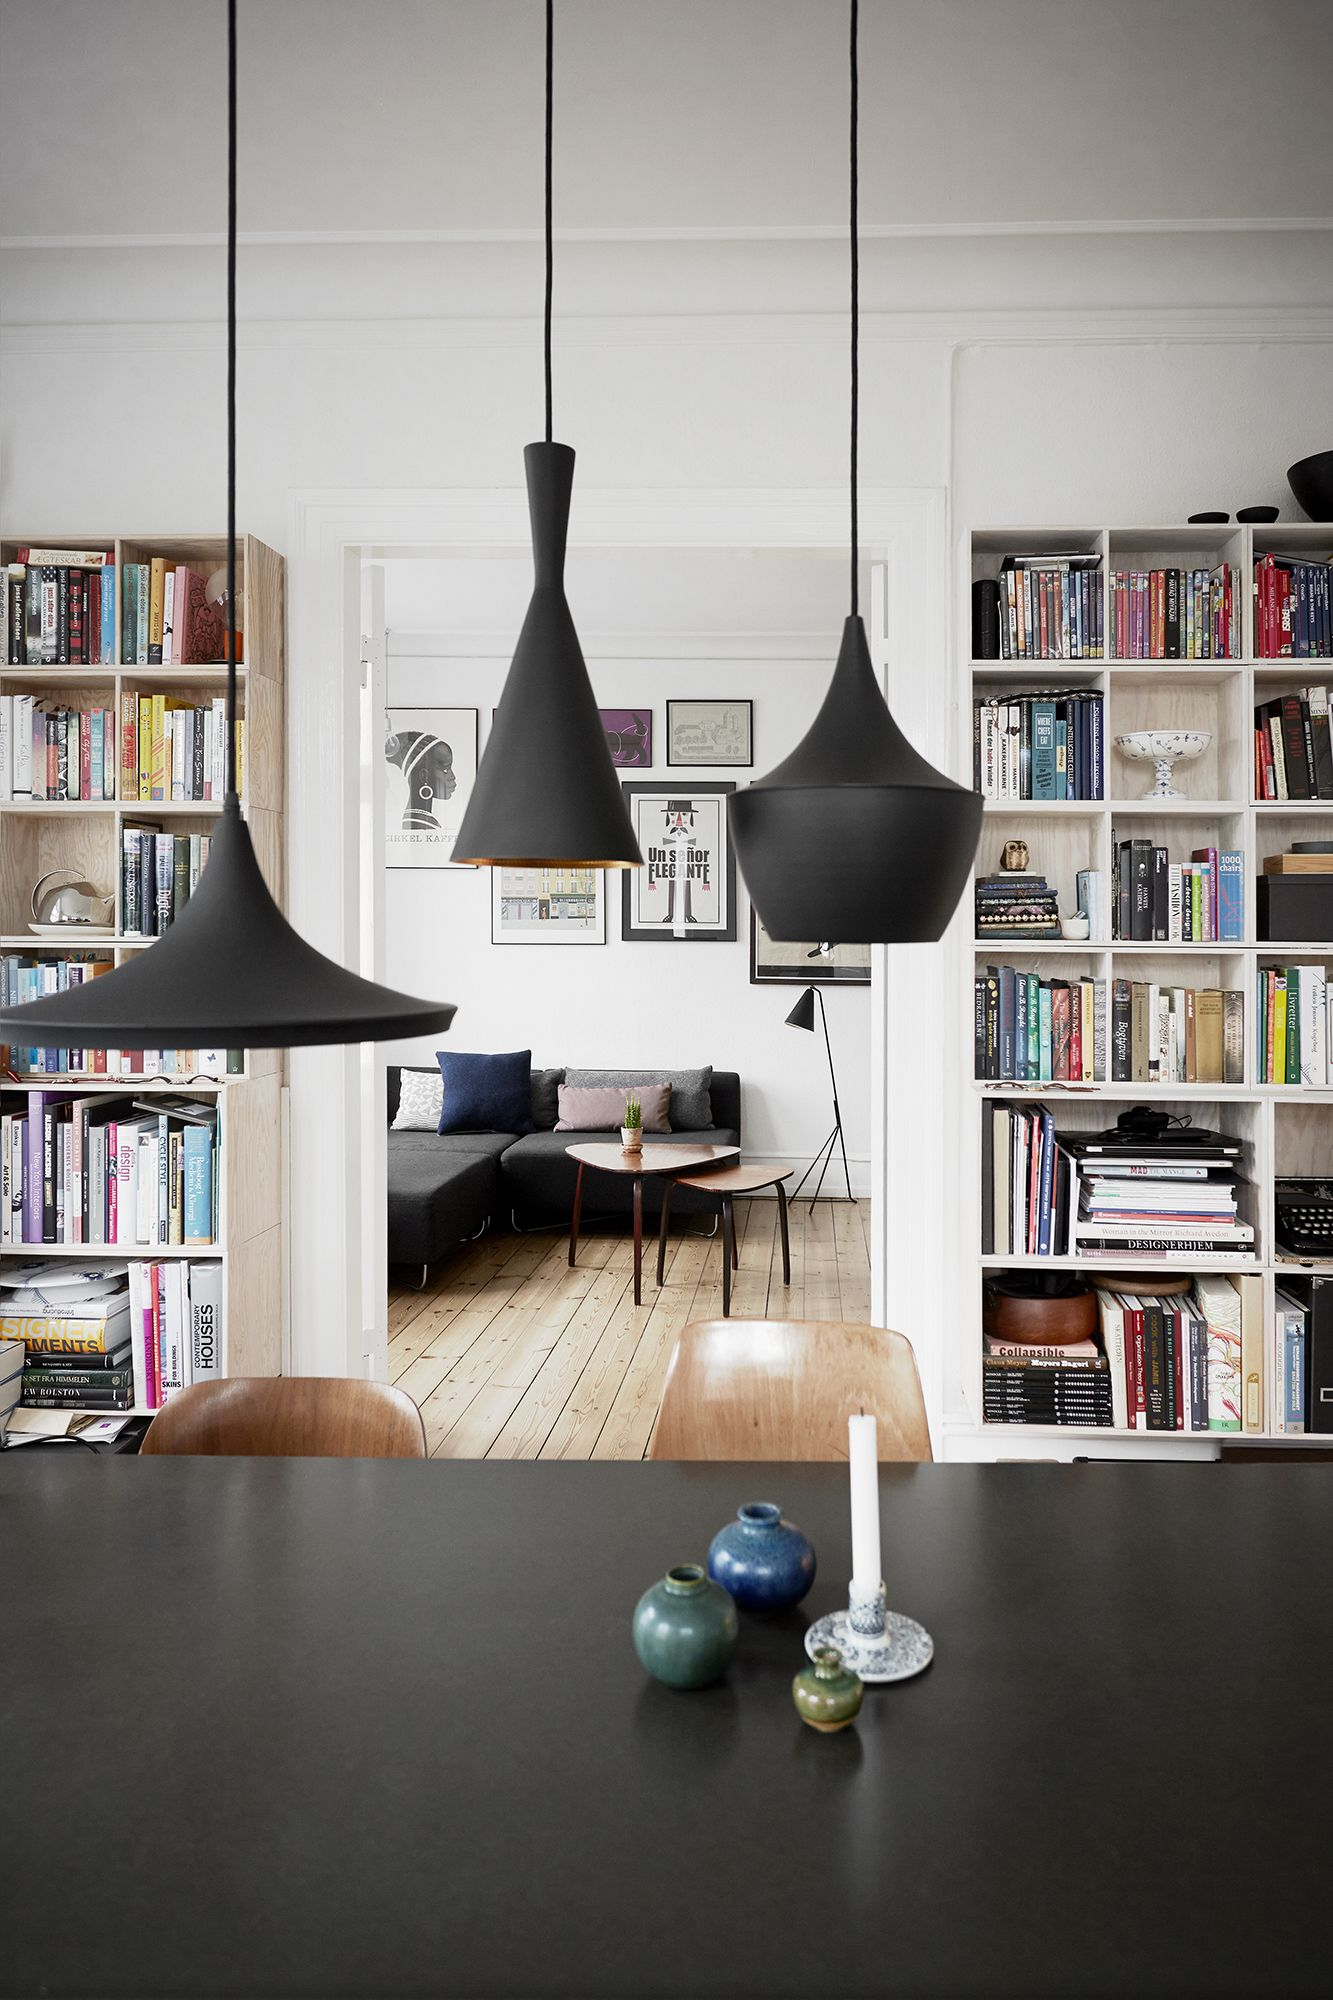 tom dixon style lighting. TOM DIXON BRASS PENDANT LIGHTS IN A DANISH HOME Tom Dixon Style Lighting D